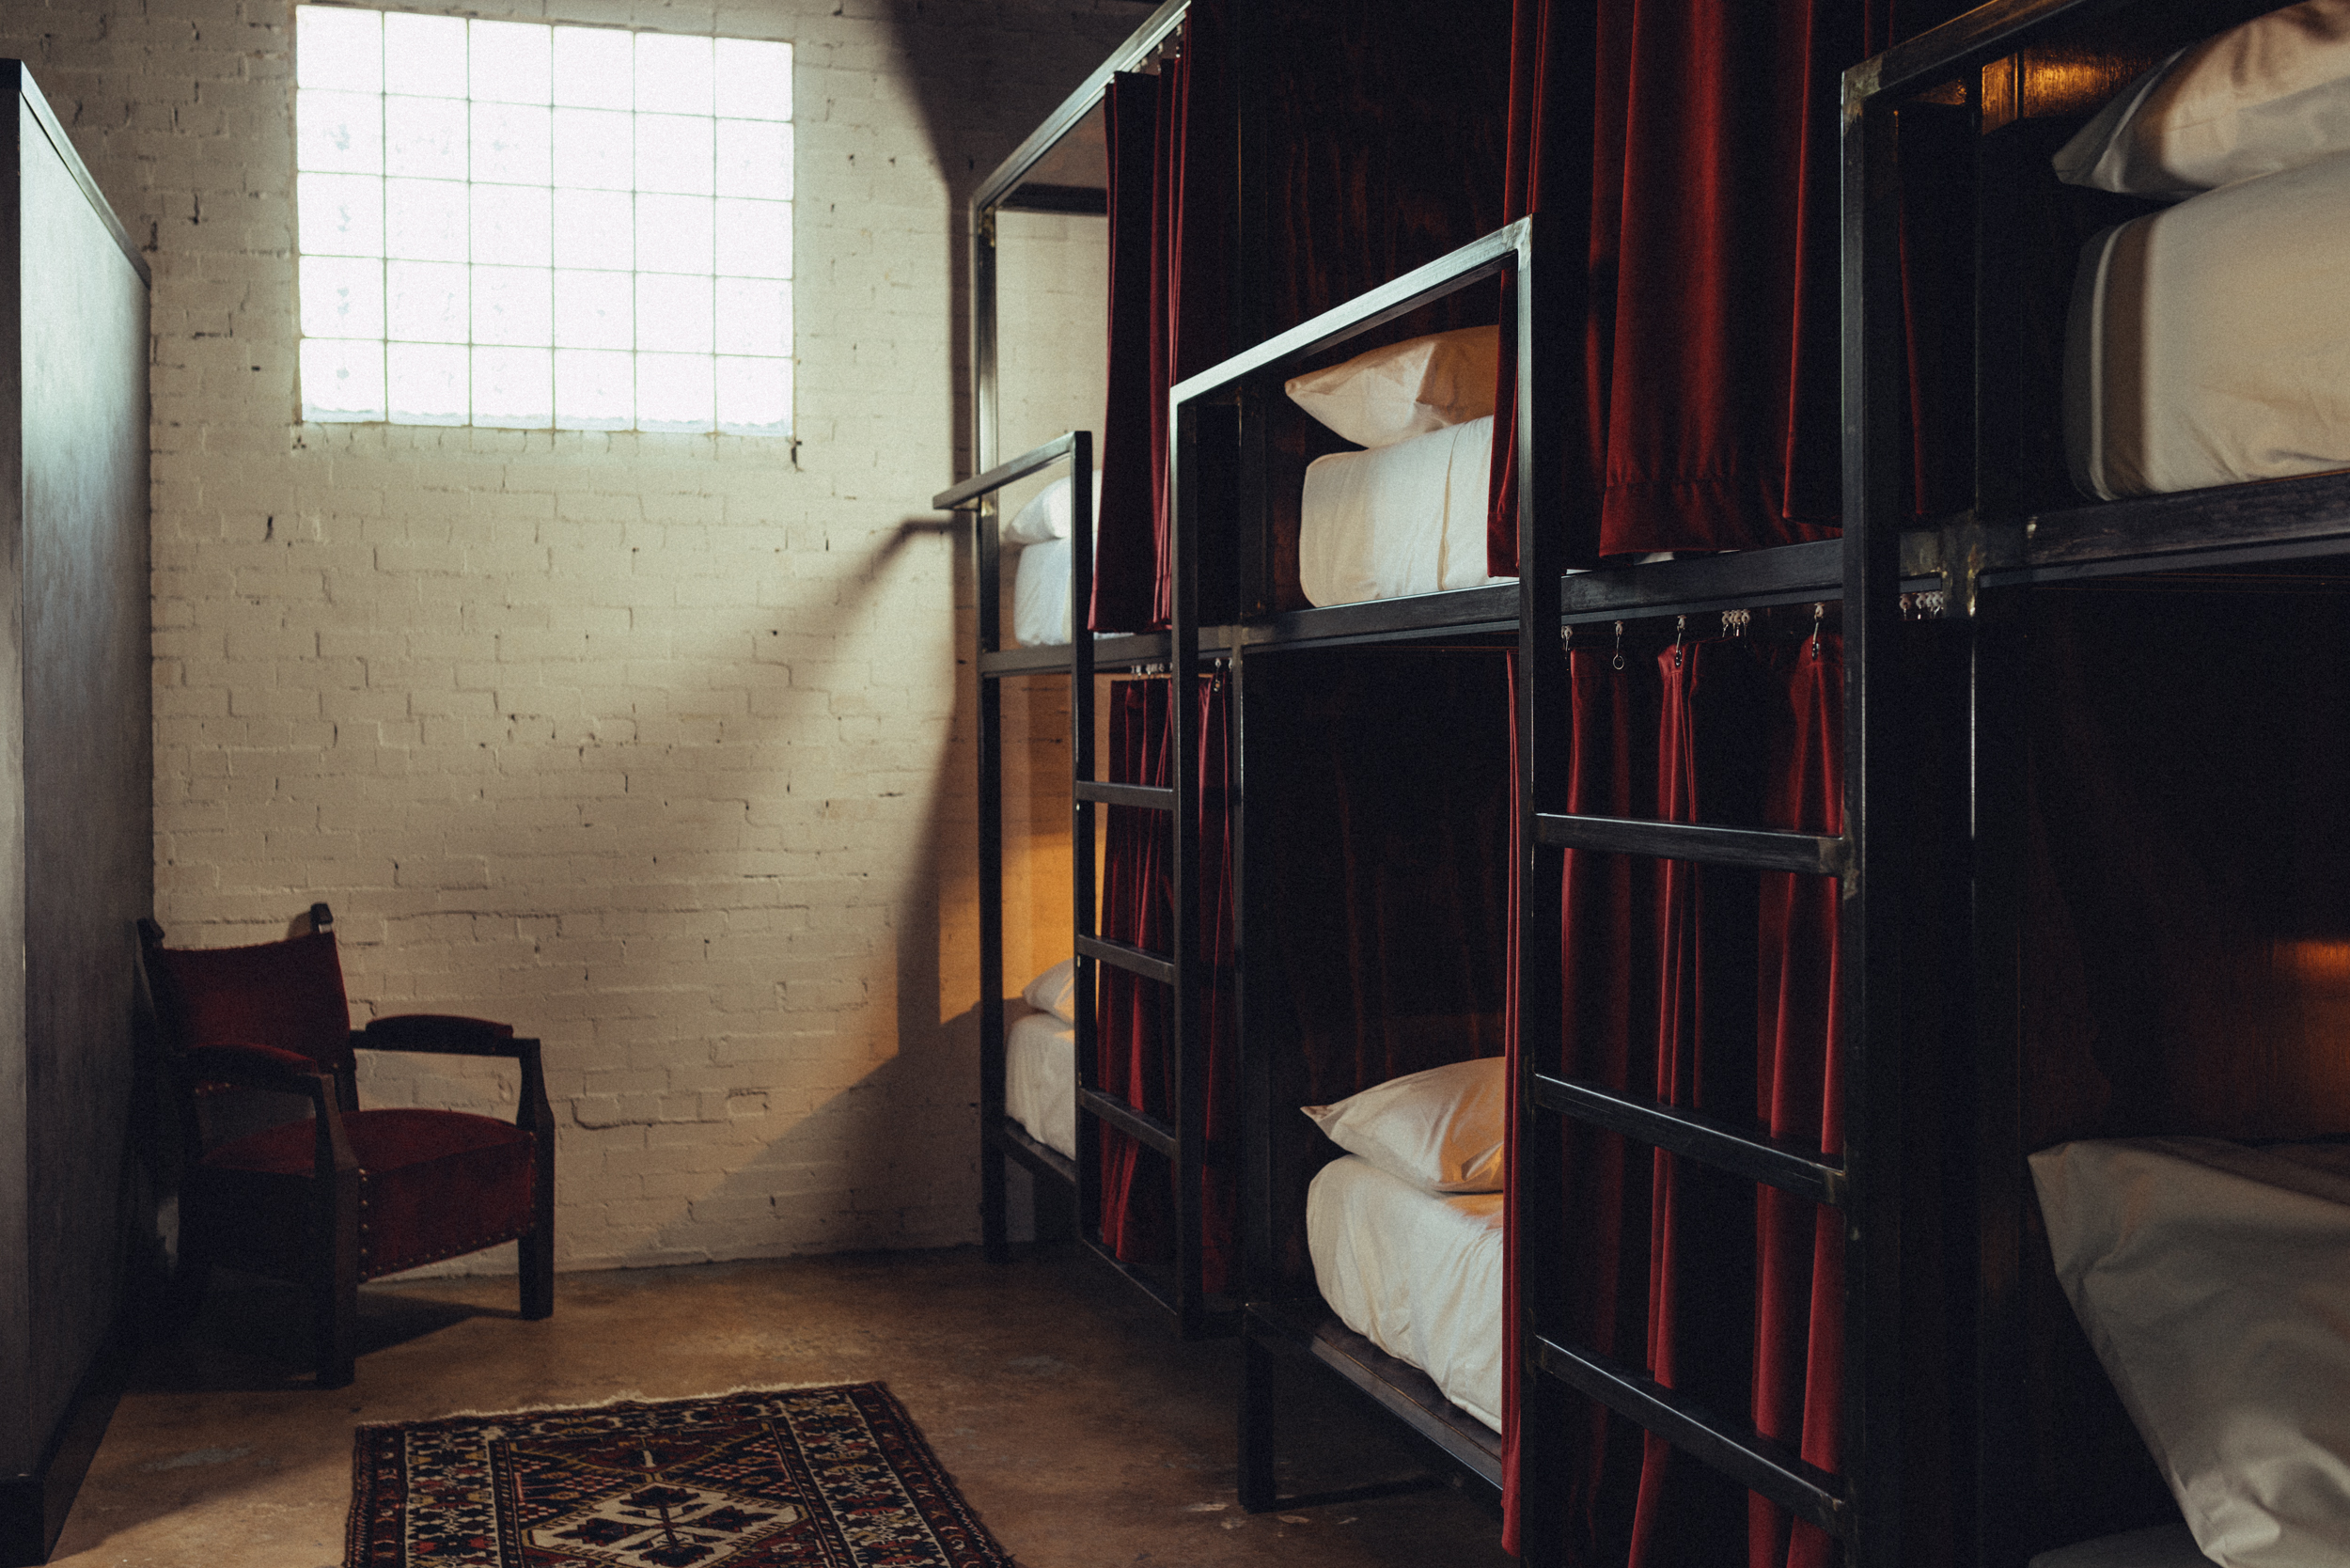 Dimly lit room with fancy bunk beds and a chair in the corner, high window